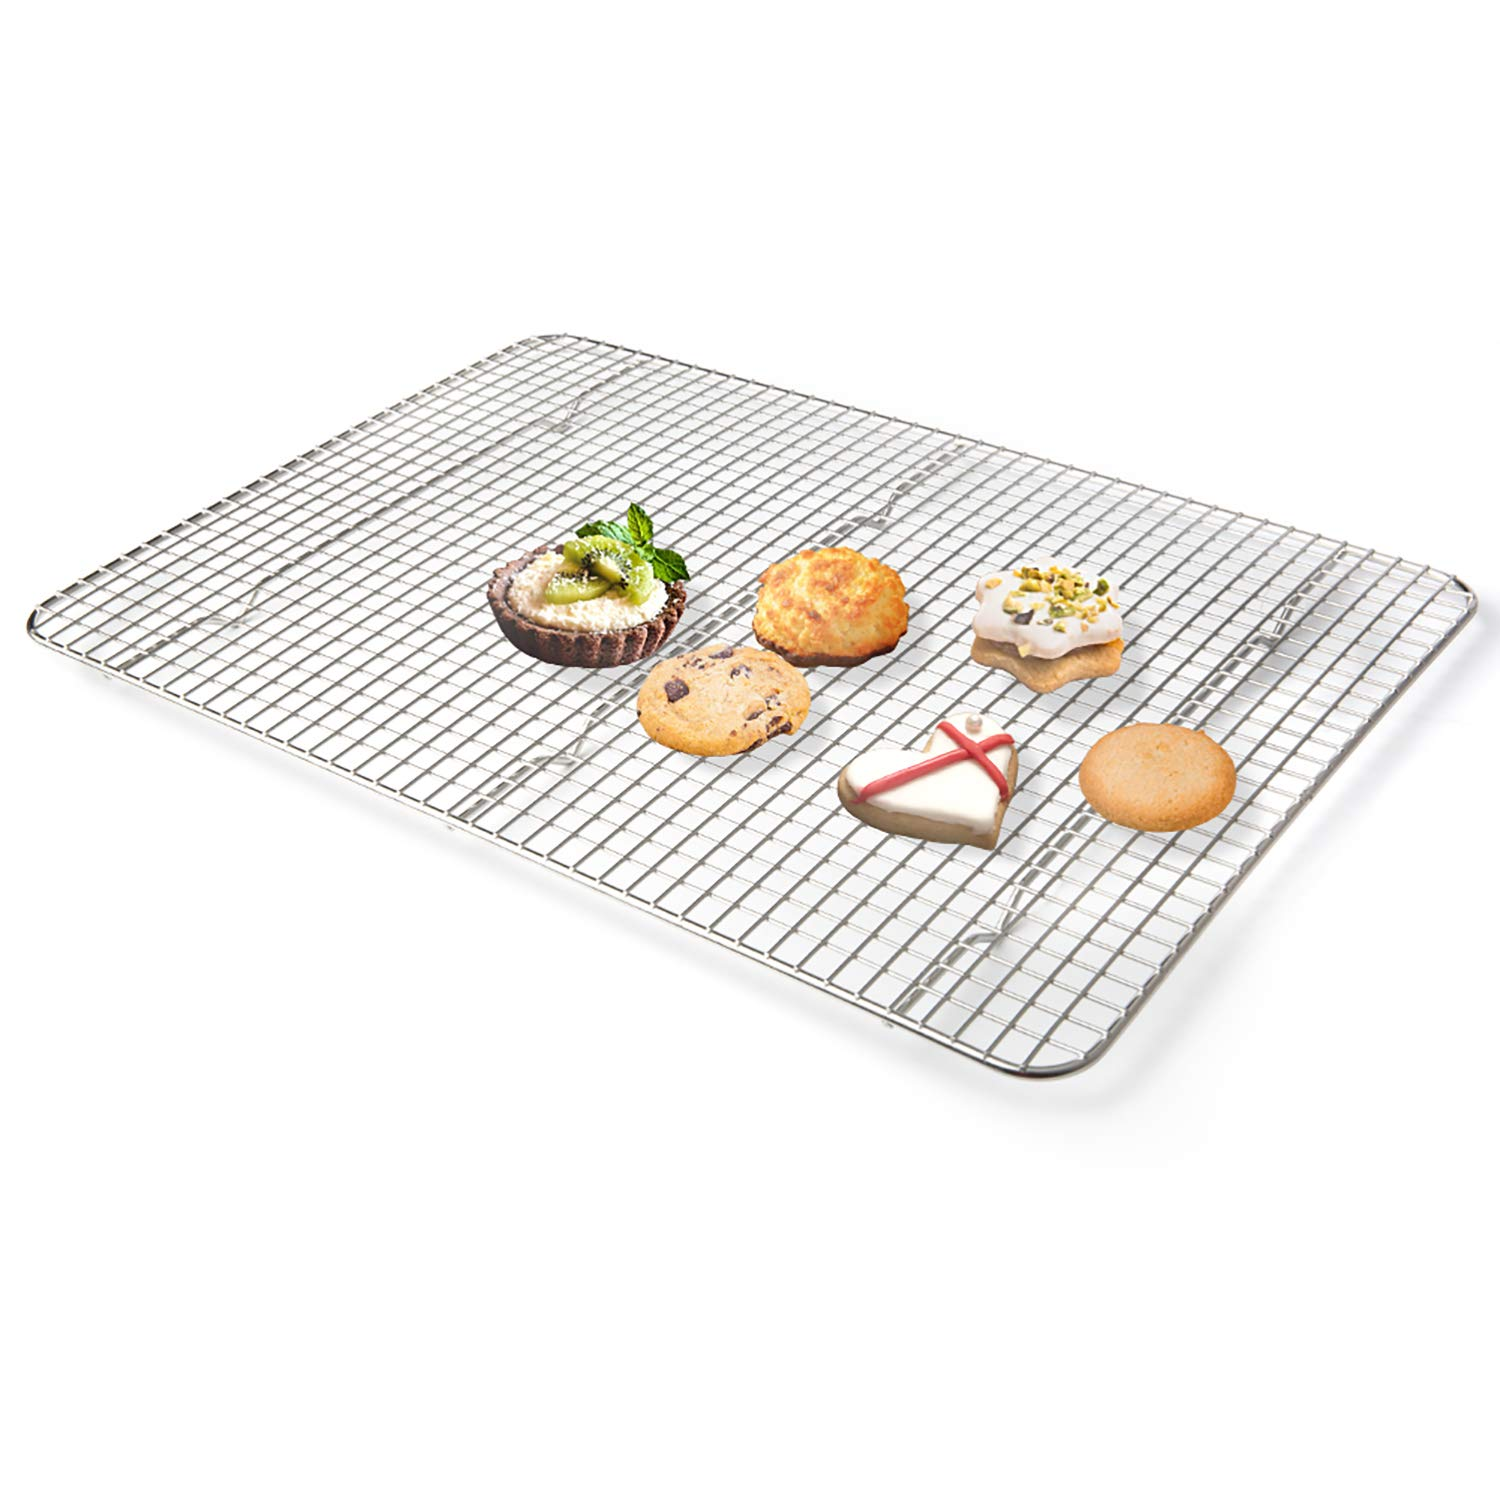 Secura Cooling Rack 100% 304 Stainless Steel, Cookie Wire Baking Racks for Baking, Cooking, Drying, Grilling, 12 x 17 Inches (Oven Safe & Dishwasher Safe)